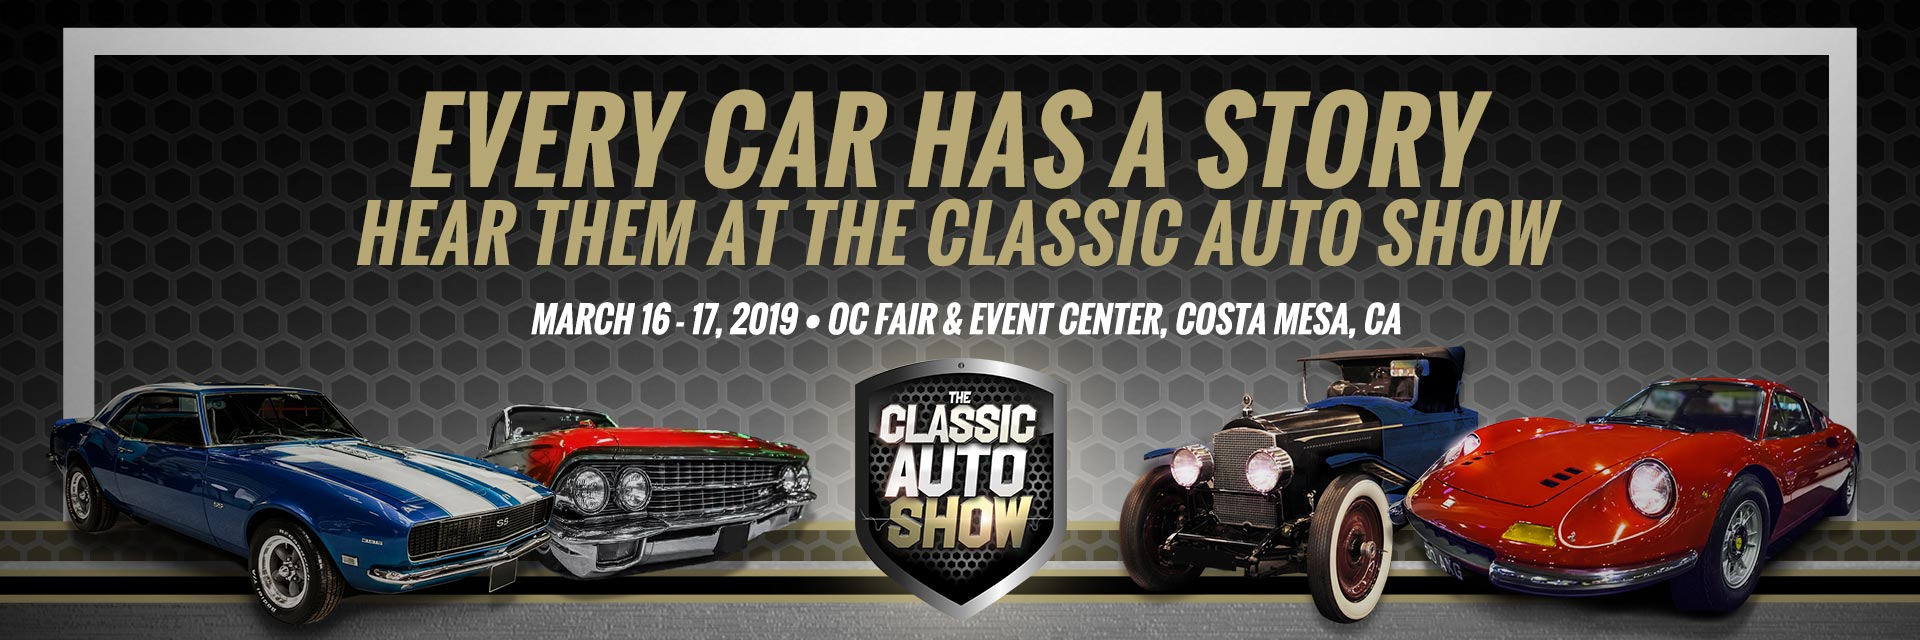 Tickets for 2019 LA Classic Auto Show in Costa Mesa from ShowClix